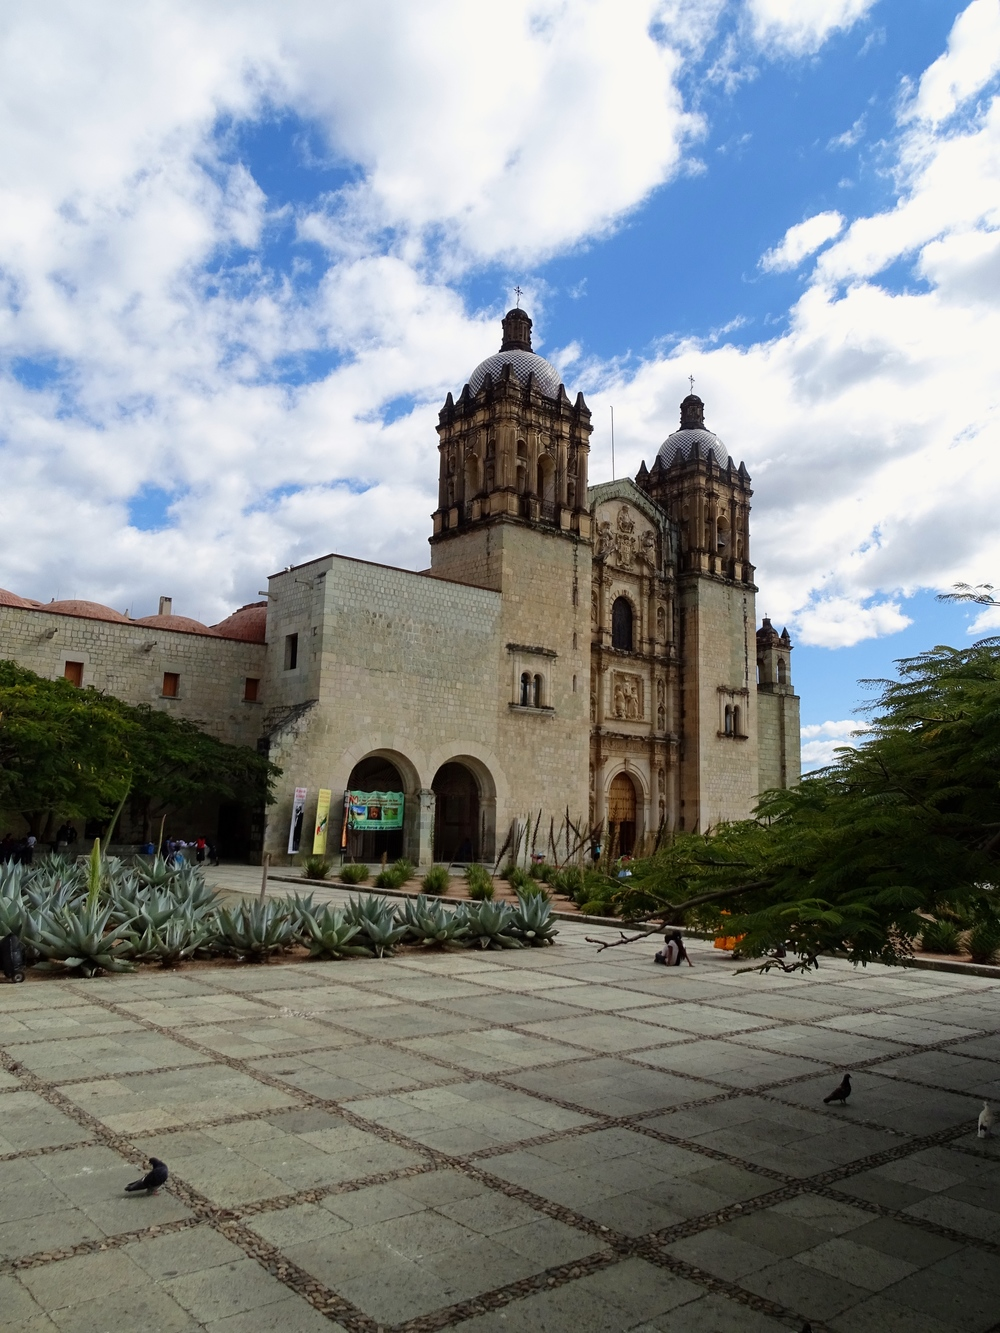 The next several shots are from our exploration of Oaxaca.